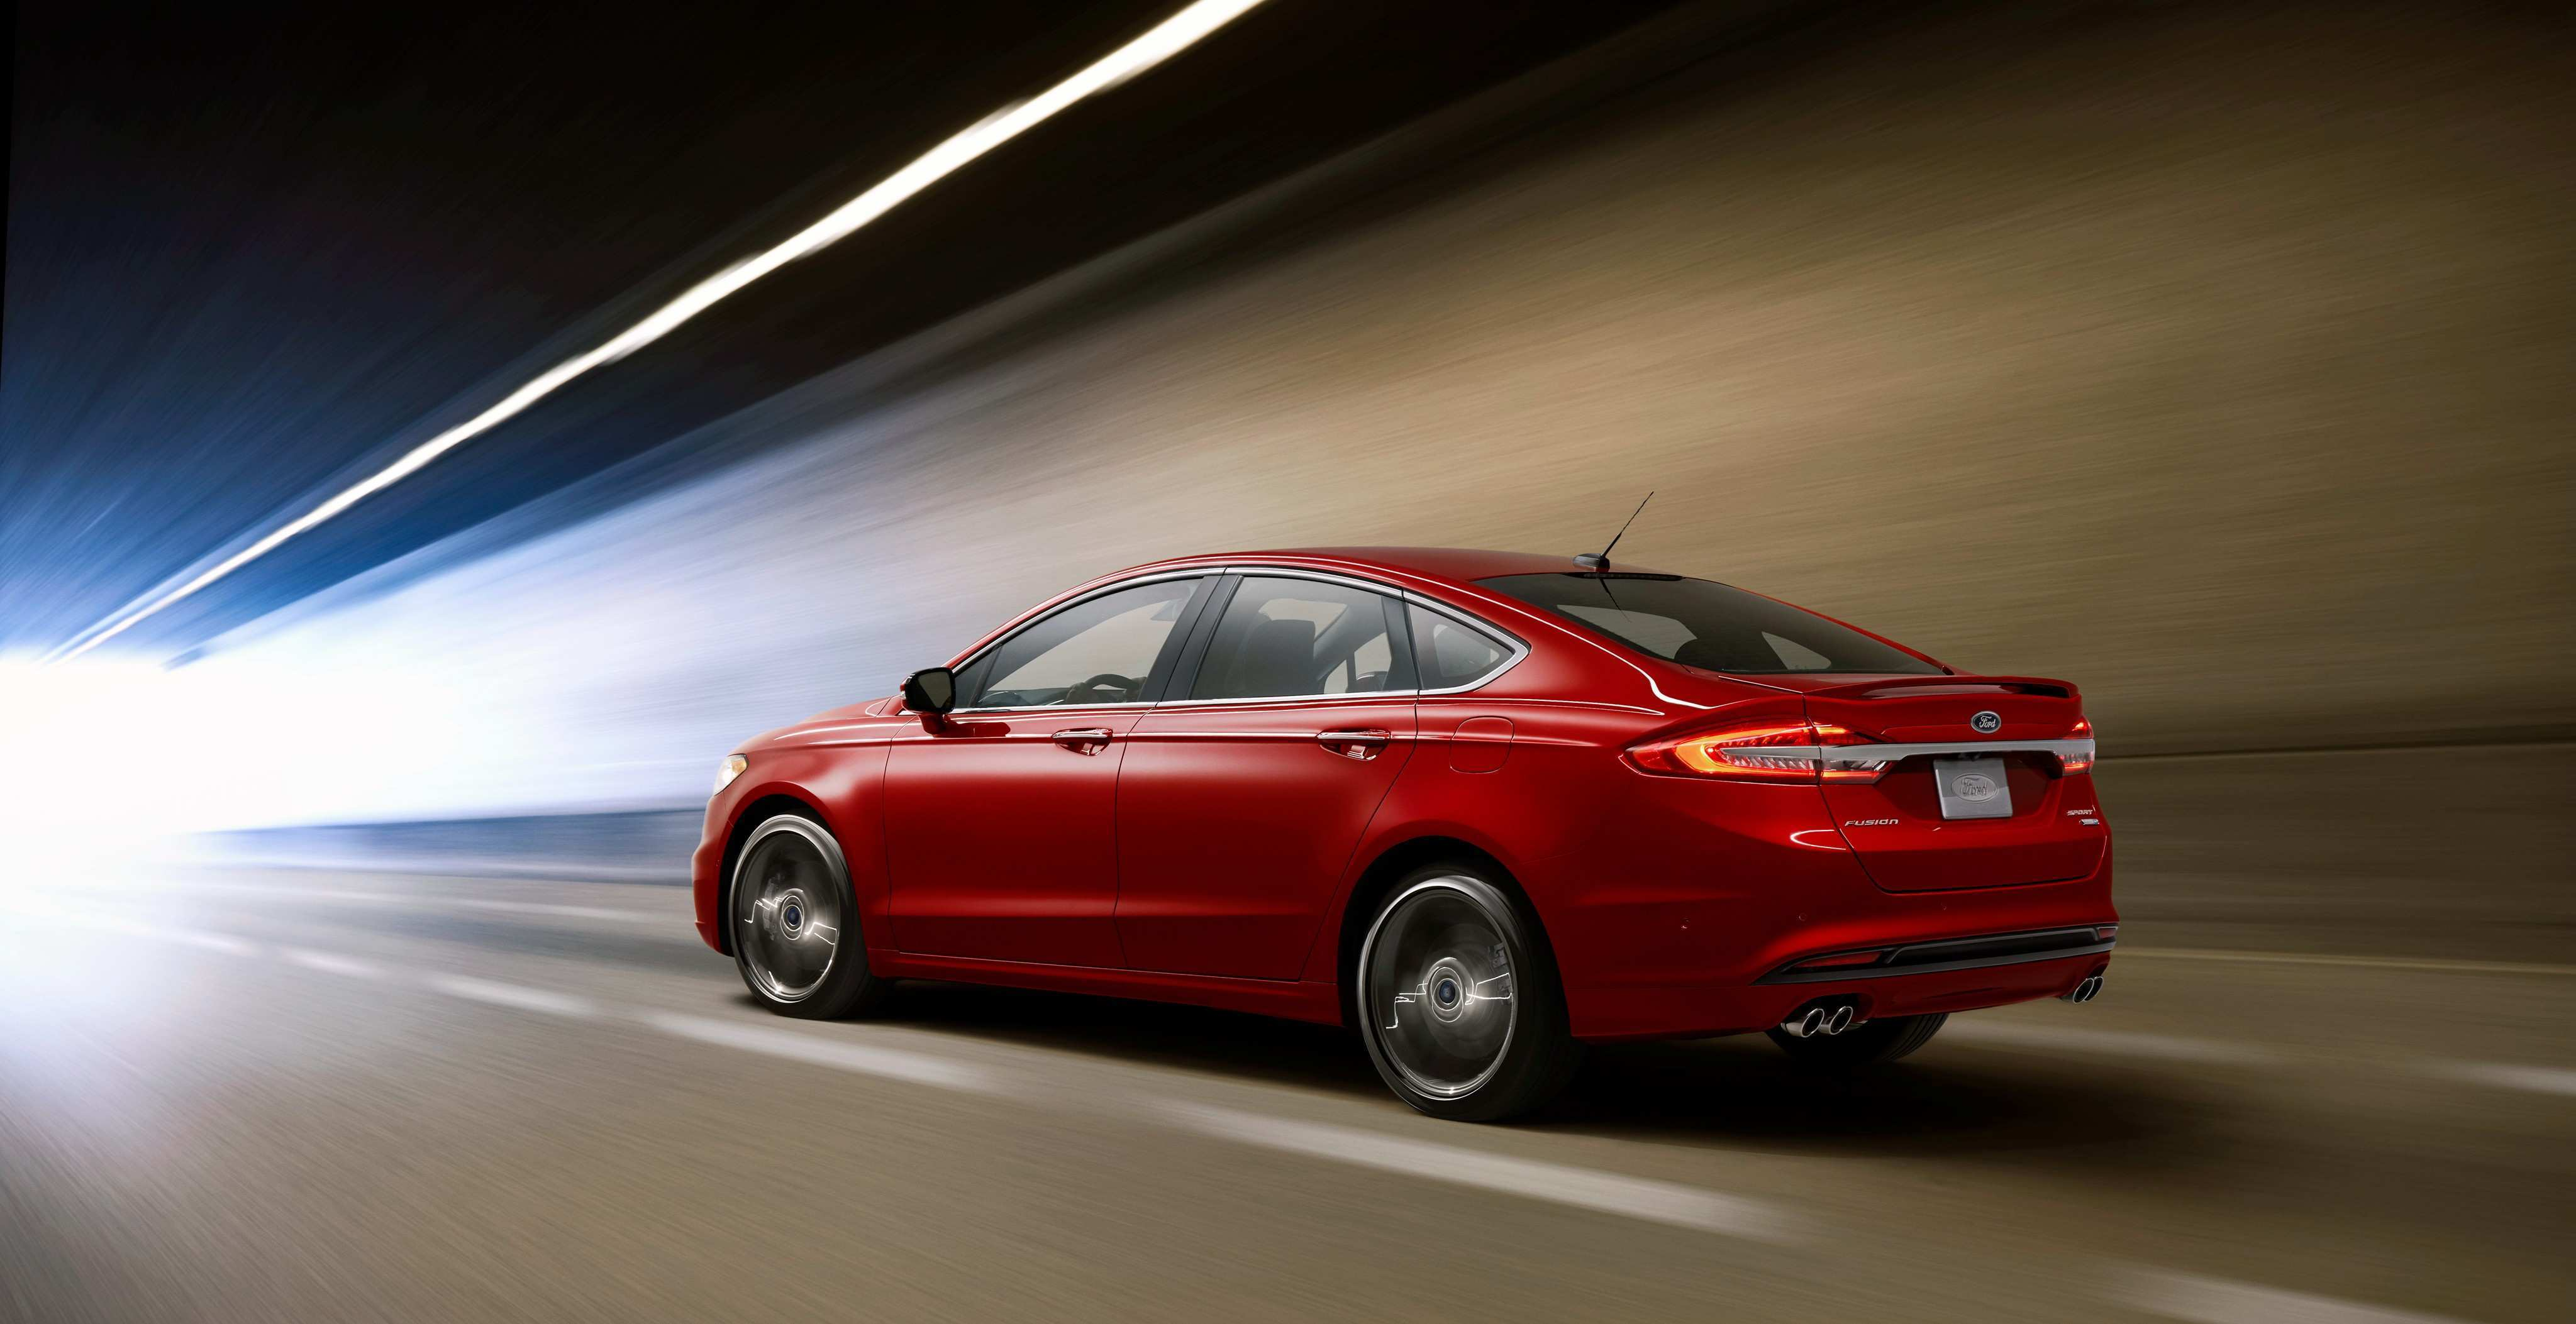 15 Gallery of 2020 Ford Fusion Redesign Performance and New Engine by 2020 Ford Fusion Redesign